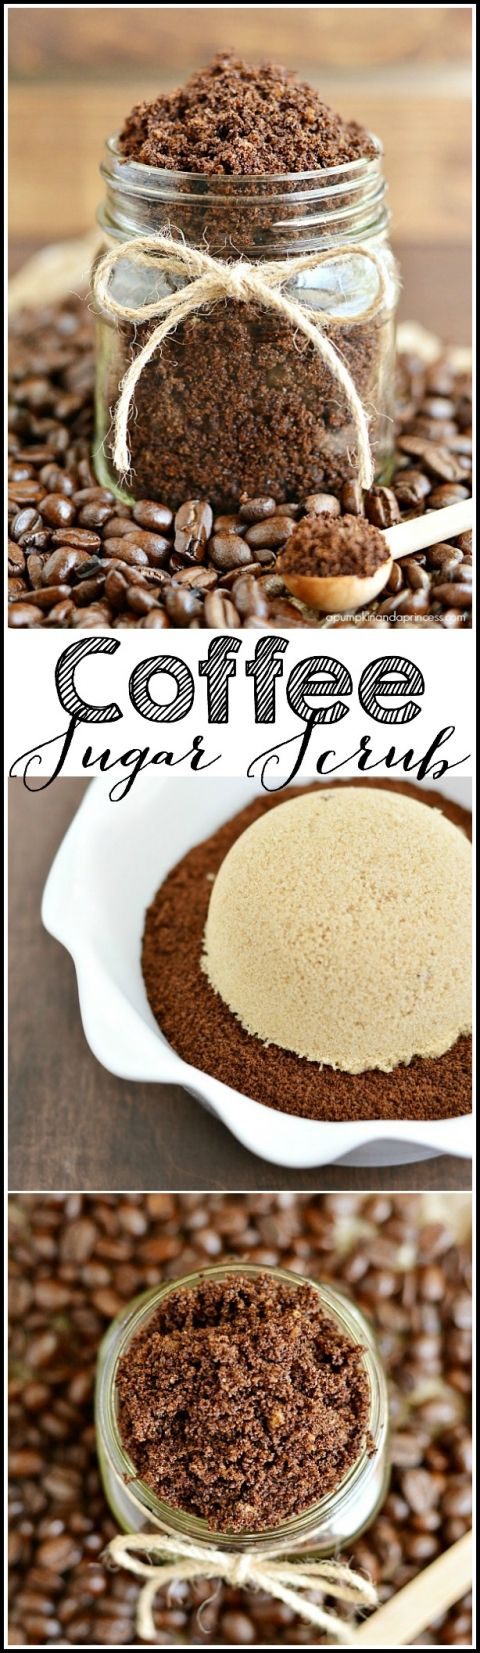 DIY Coffee Sugar Scrub - skin nourishing oils and a blend of coffee & sugar help exfoliate dry skin. Great handmade Christmas gift idea!